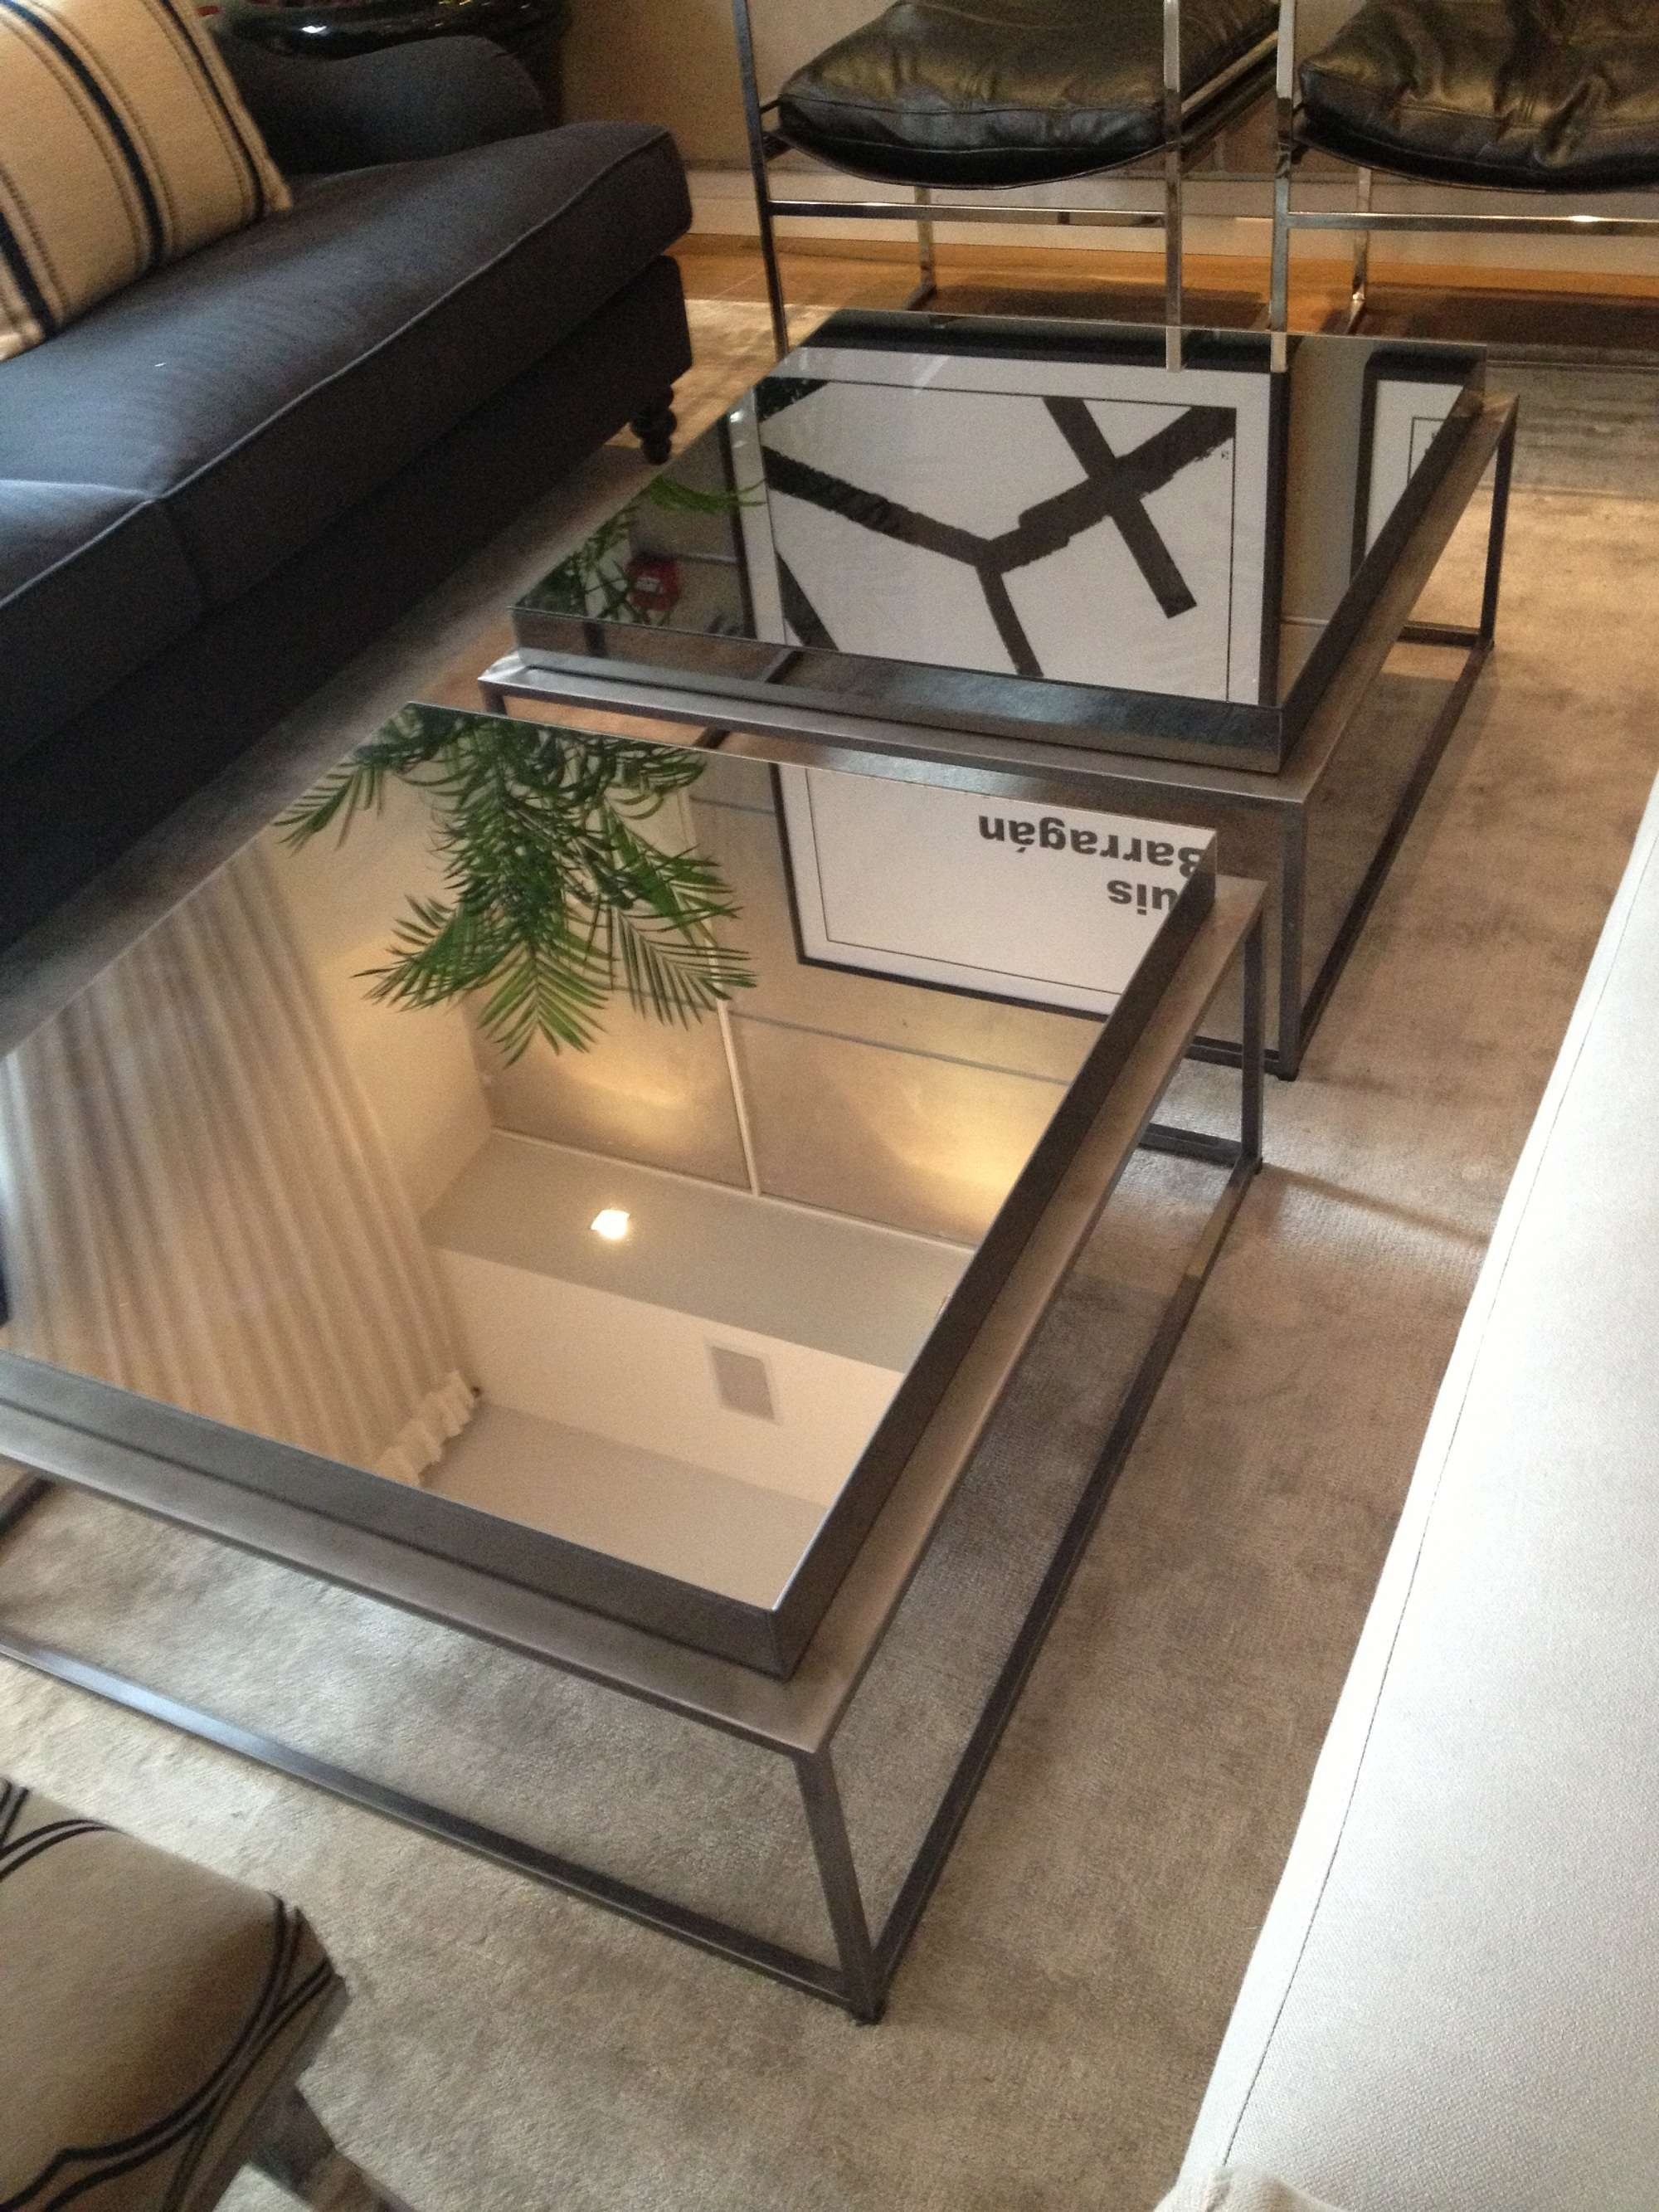 Pair Of Square Industrial Mirrored Coffee Table With Glass Top And Pertaining To Most Up To Date Square Storage Coffee Tables (View 10 of 20)